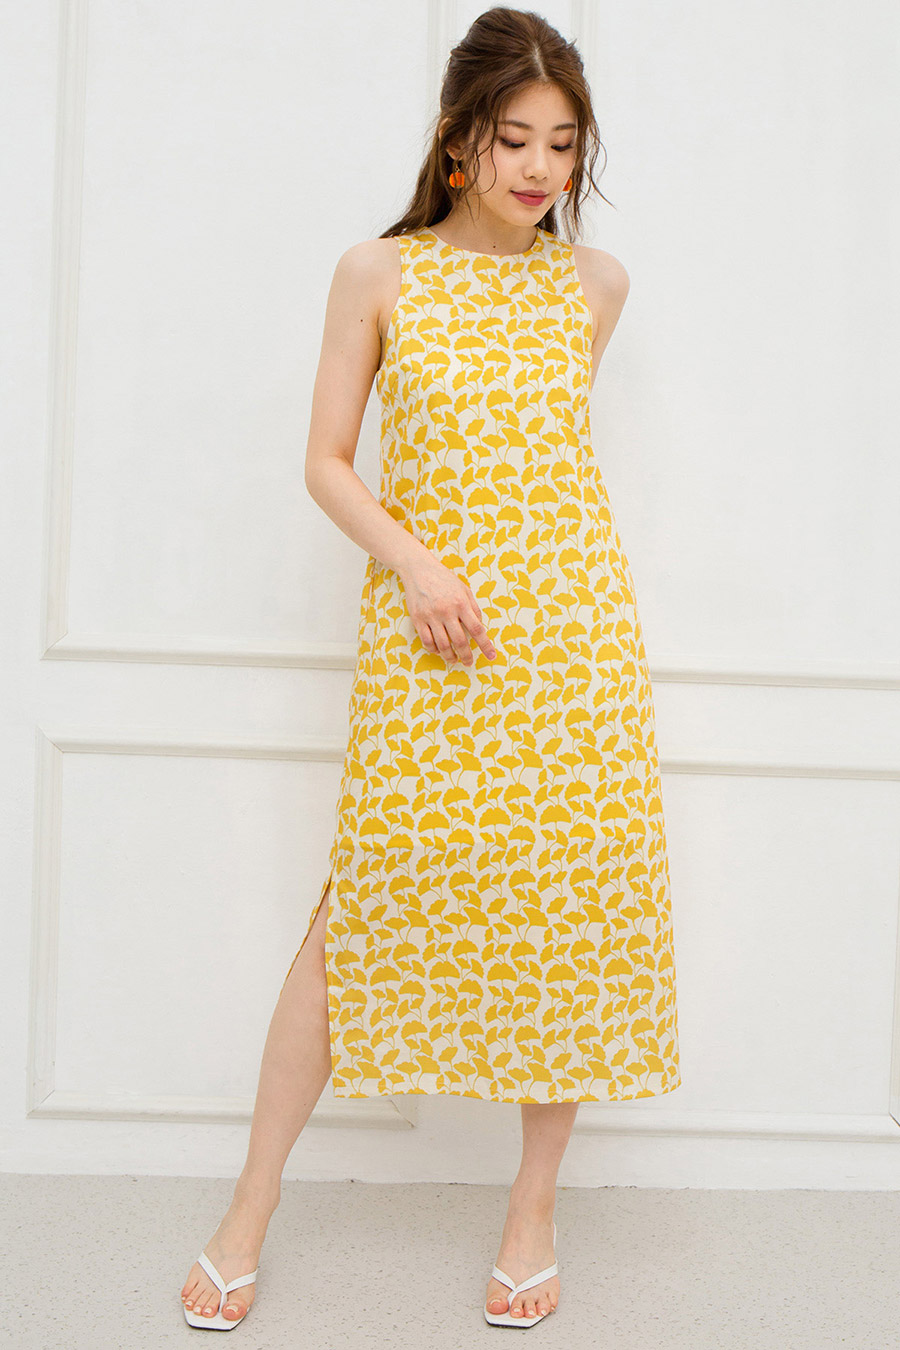 *RESTOCKED* MAREN DRESS - GINKGO [BY MODPARADE]